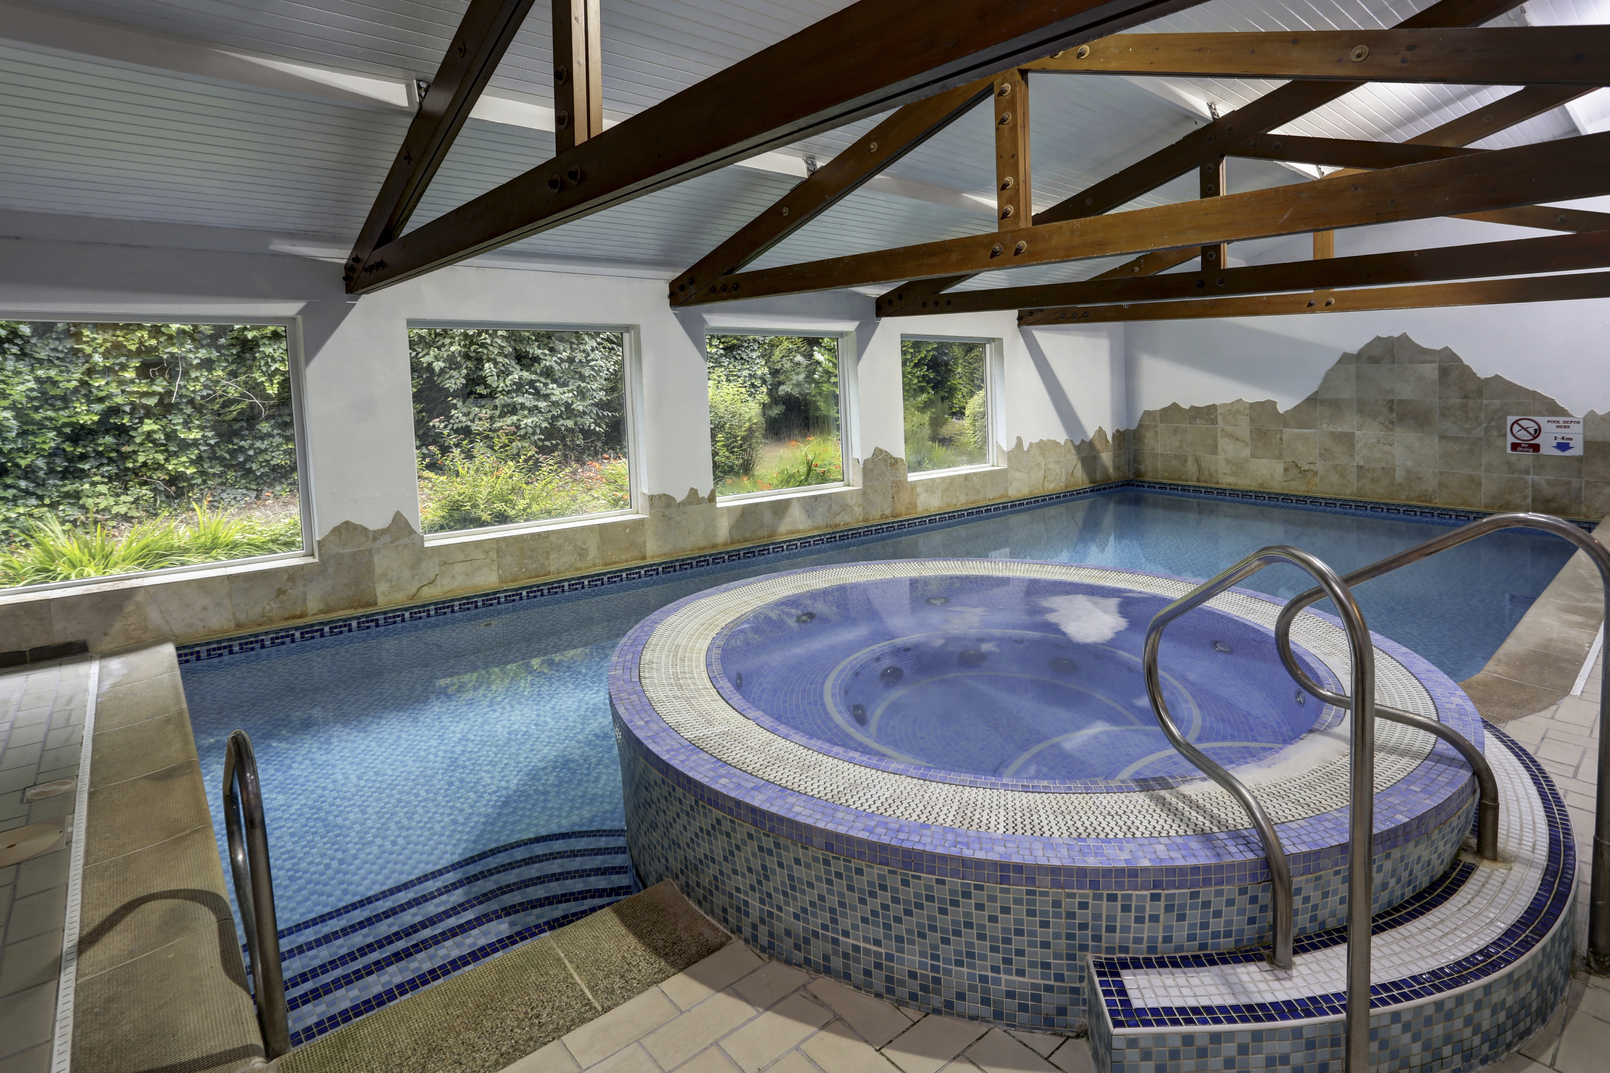 Dower house hotel spa sure hotel collection by best western - Knaresborough swimming pool timetable ...